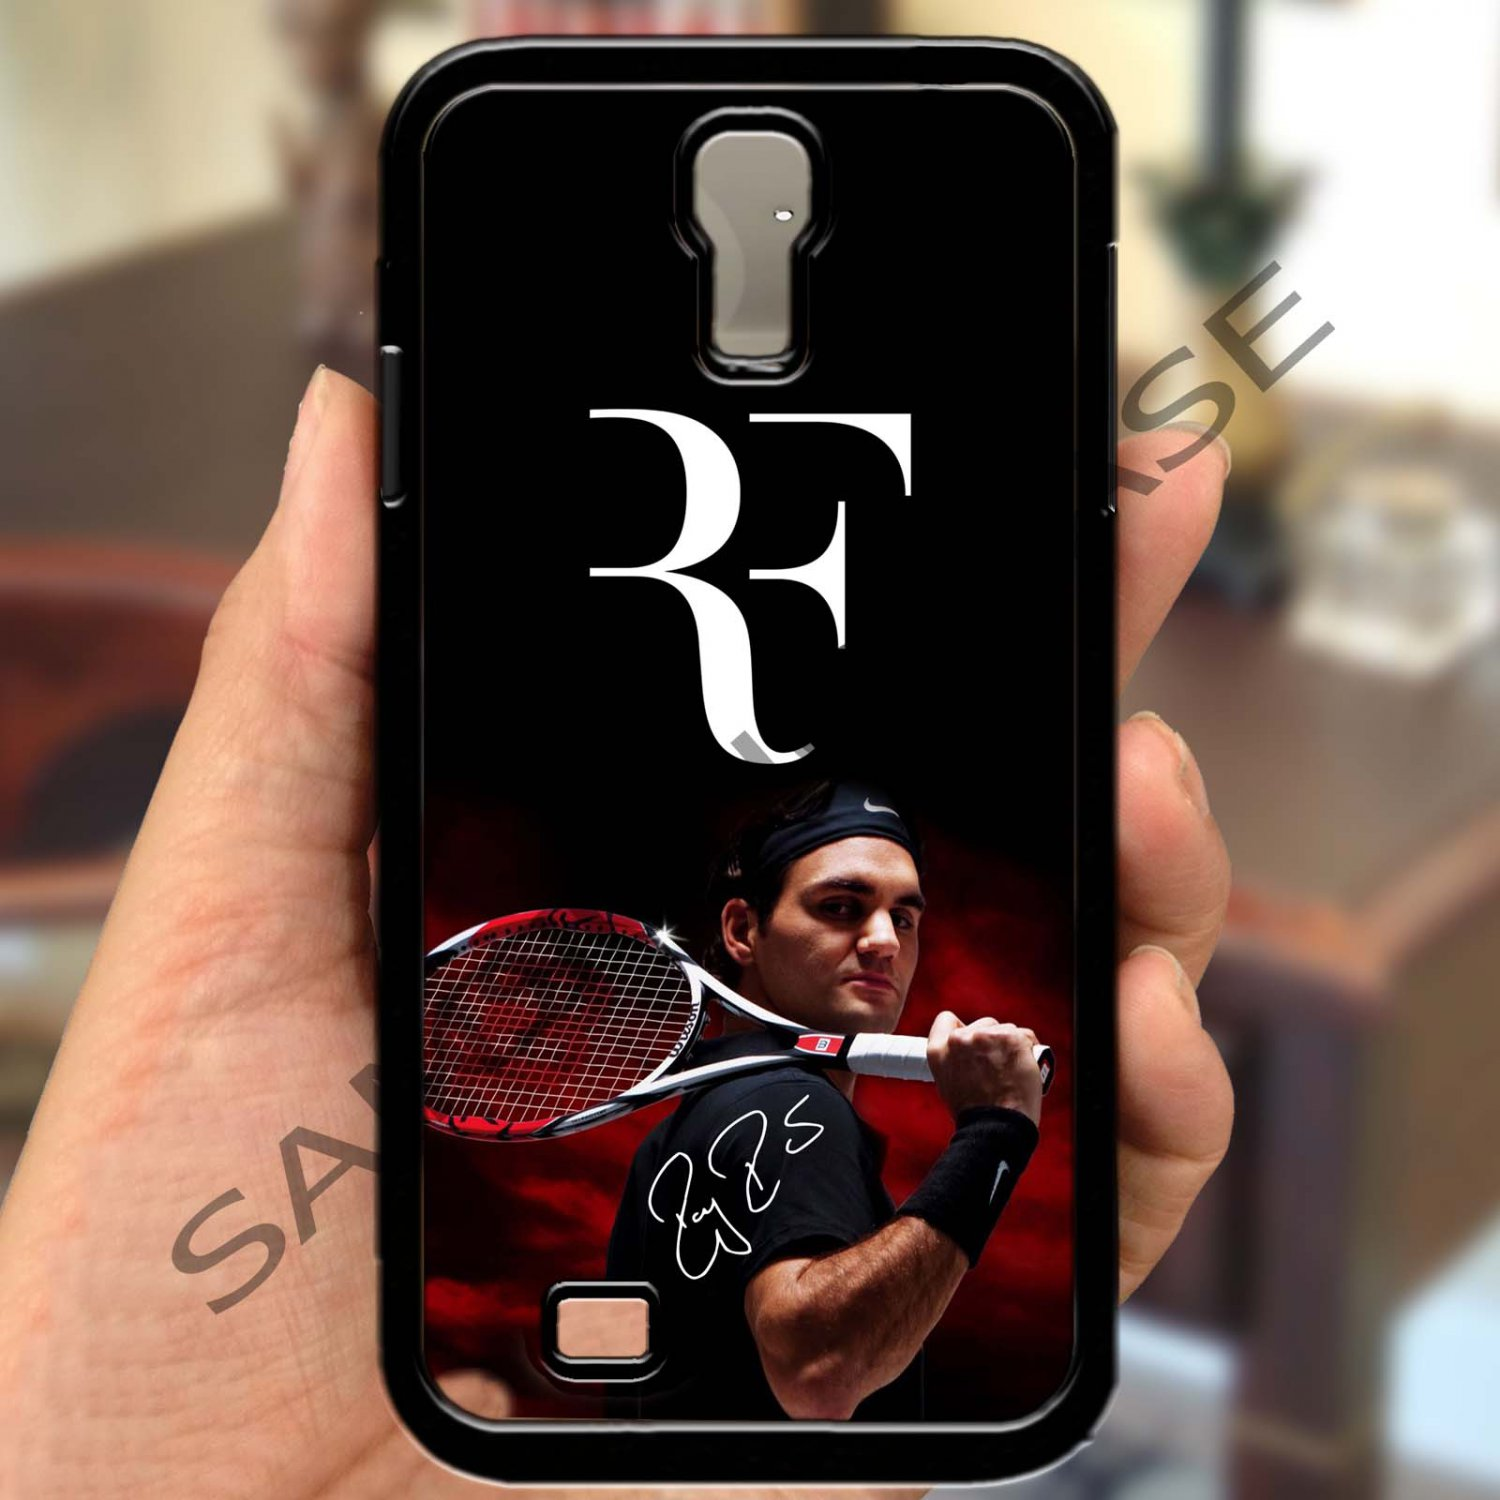 roger federer logo tennis signature fit for samsung galaxy S4 S 4 S IV black case cover